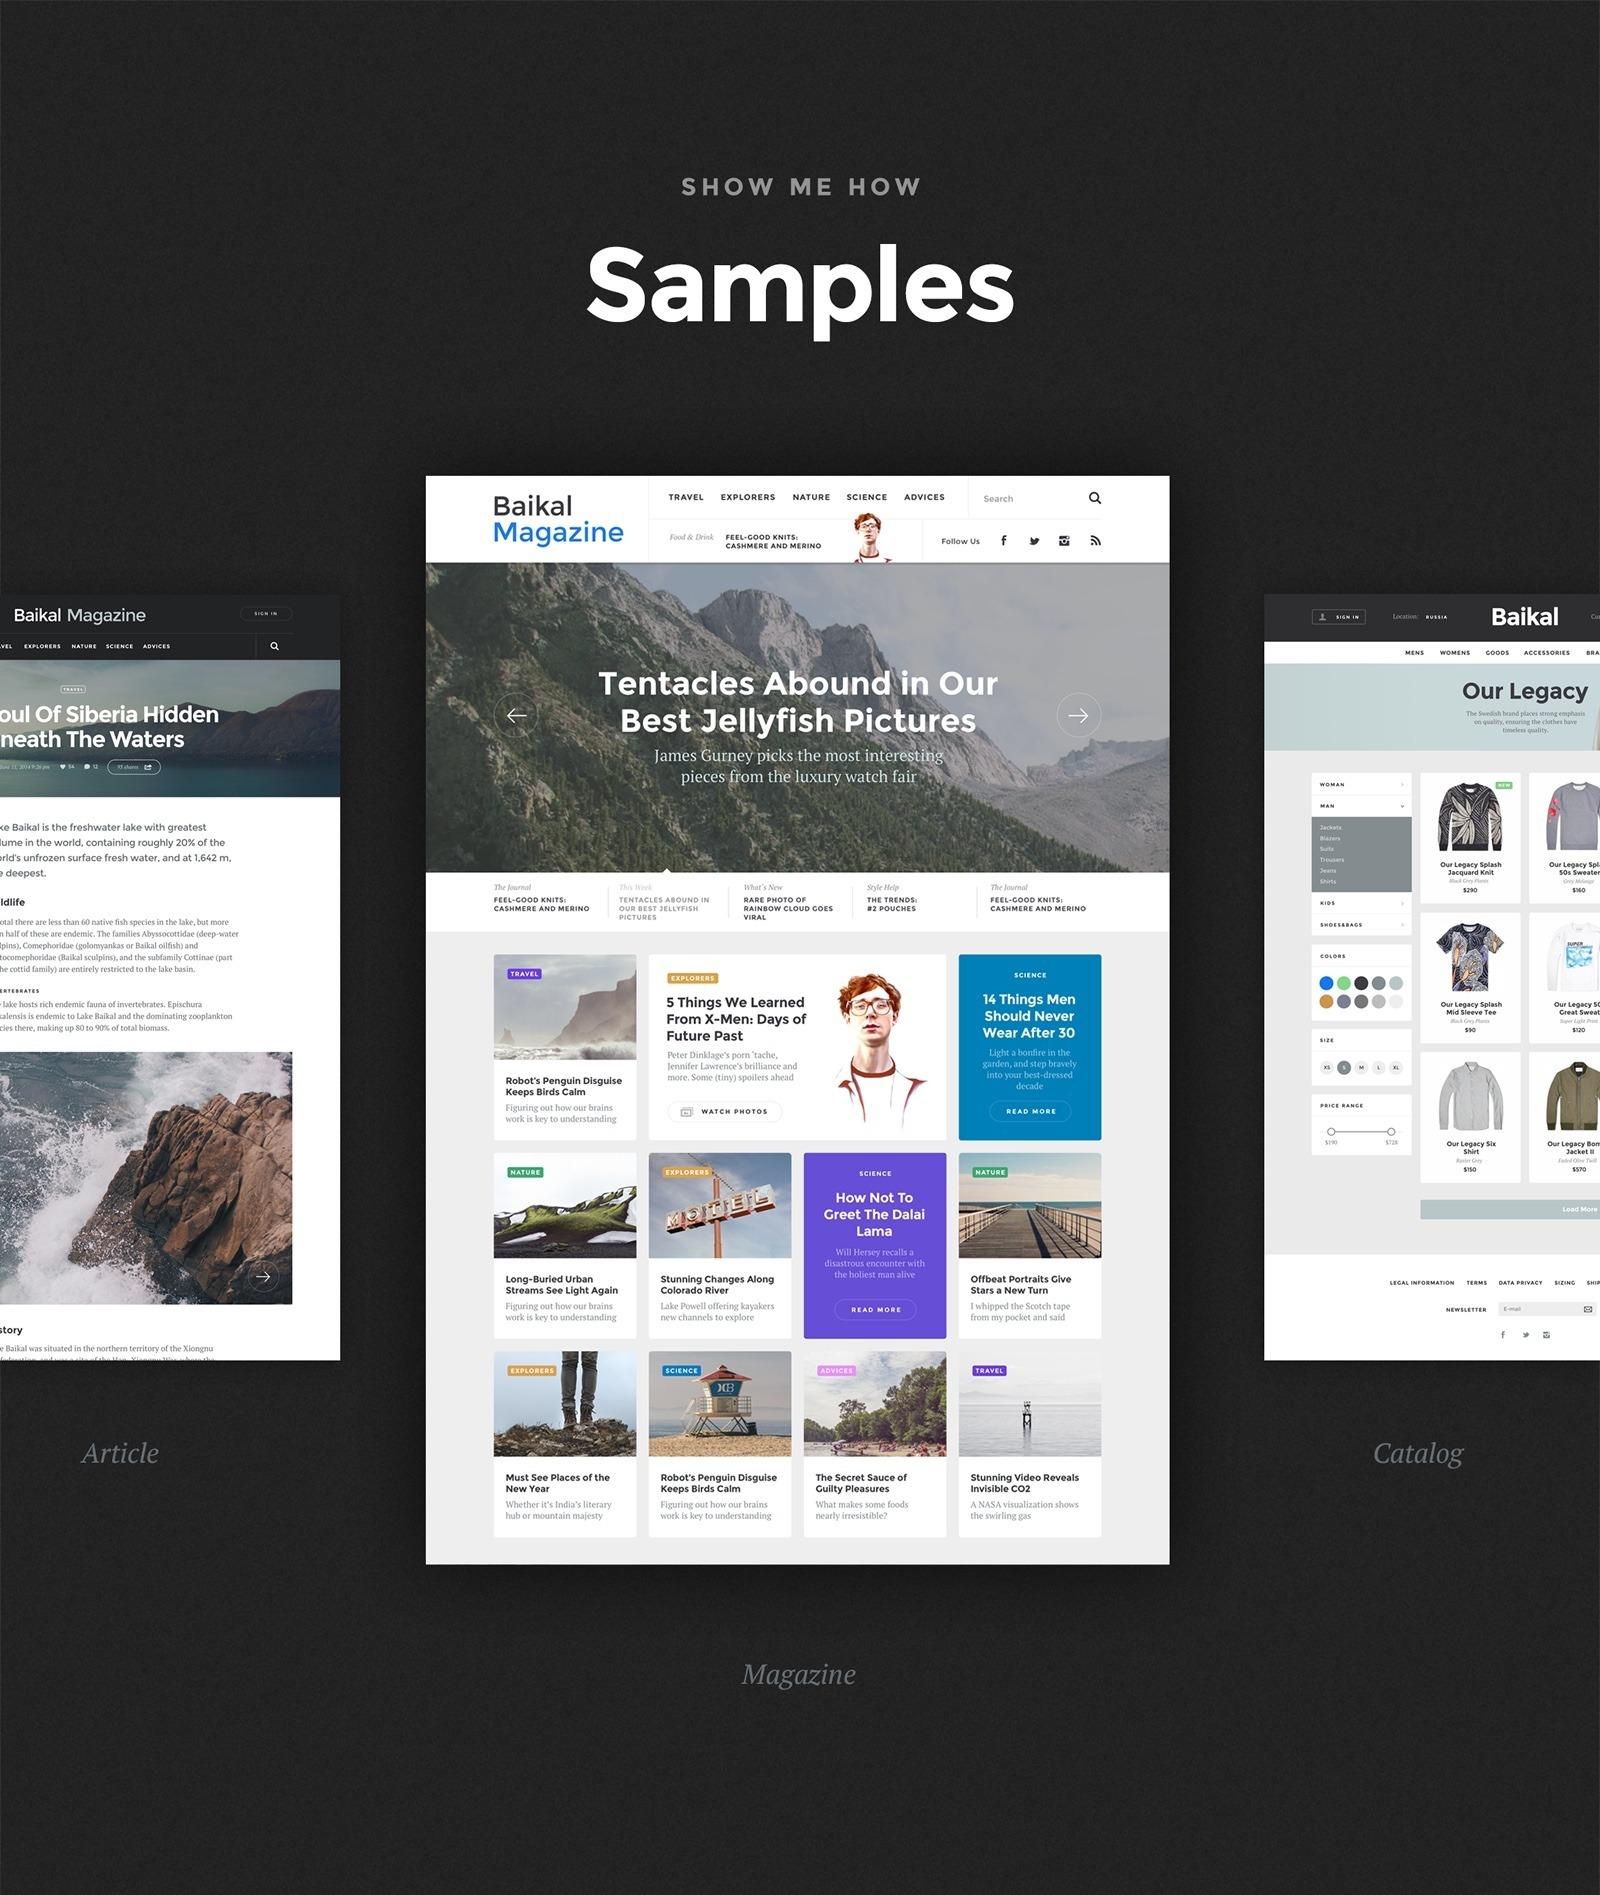 12 Samples - Baikal UI Kit - Huge Set Of UI Components